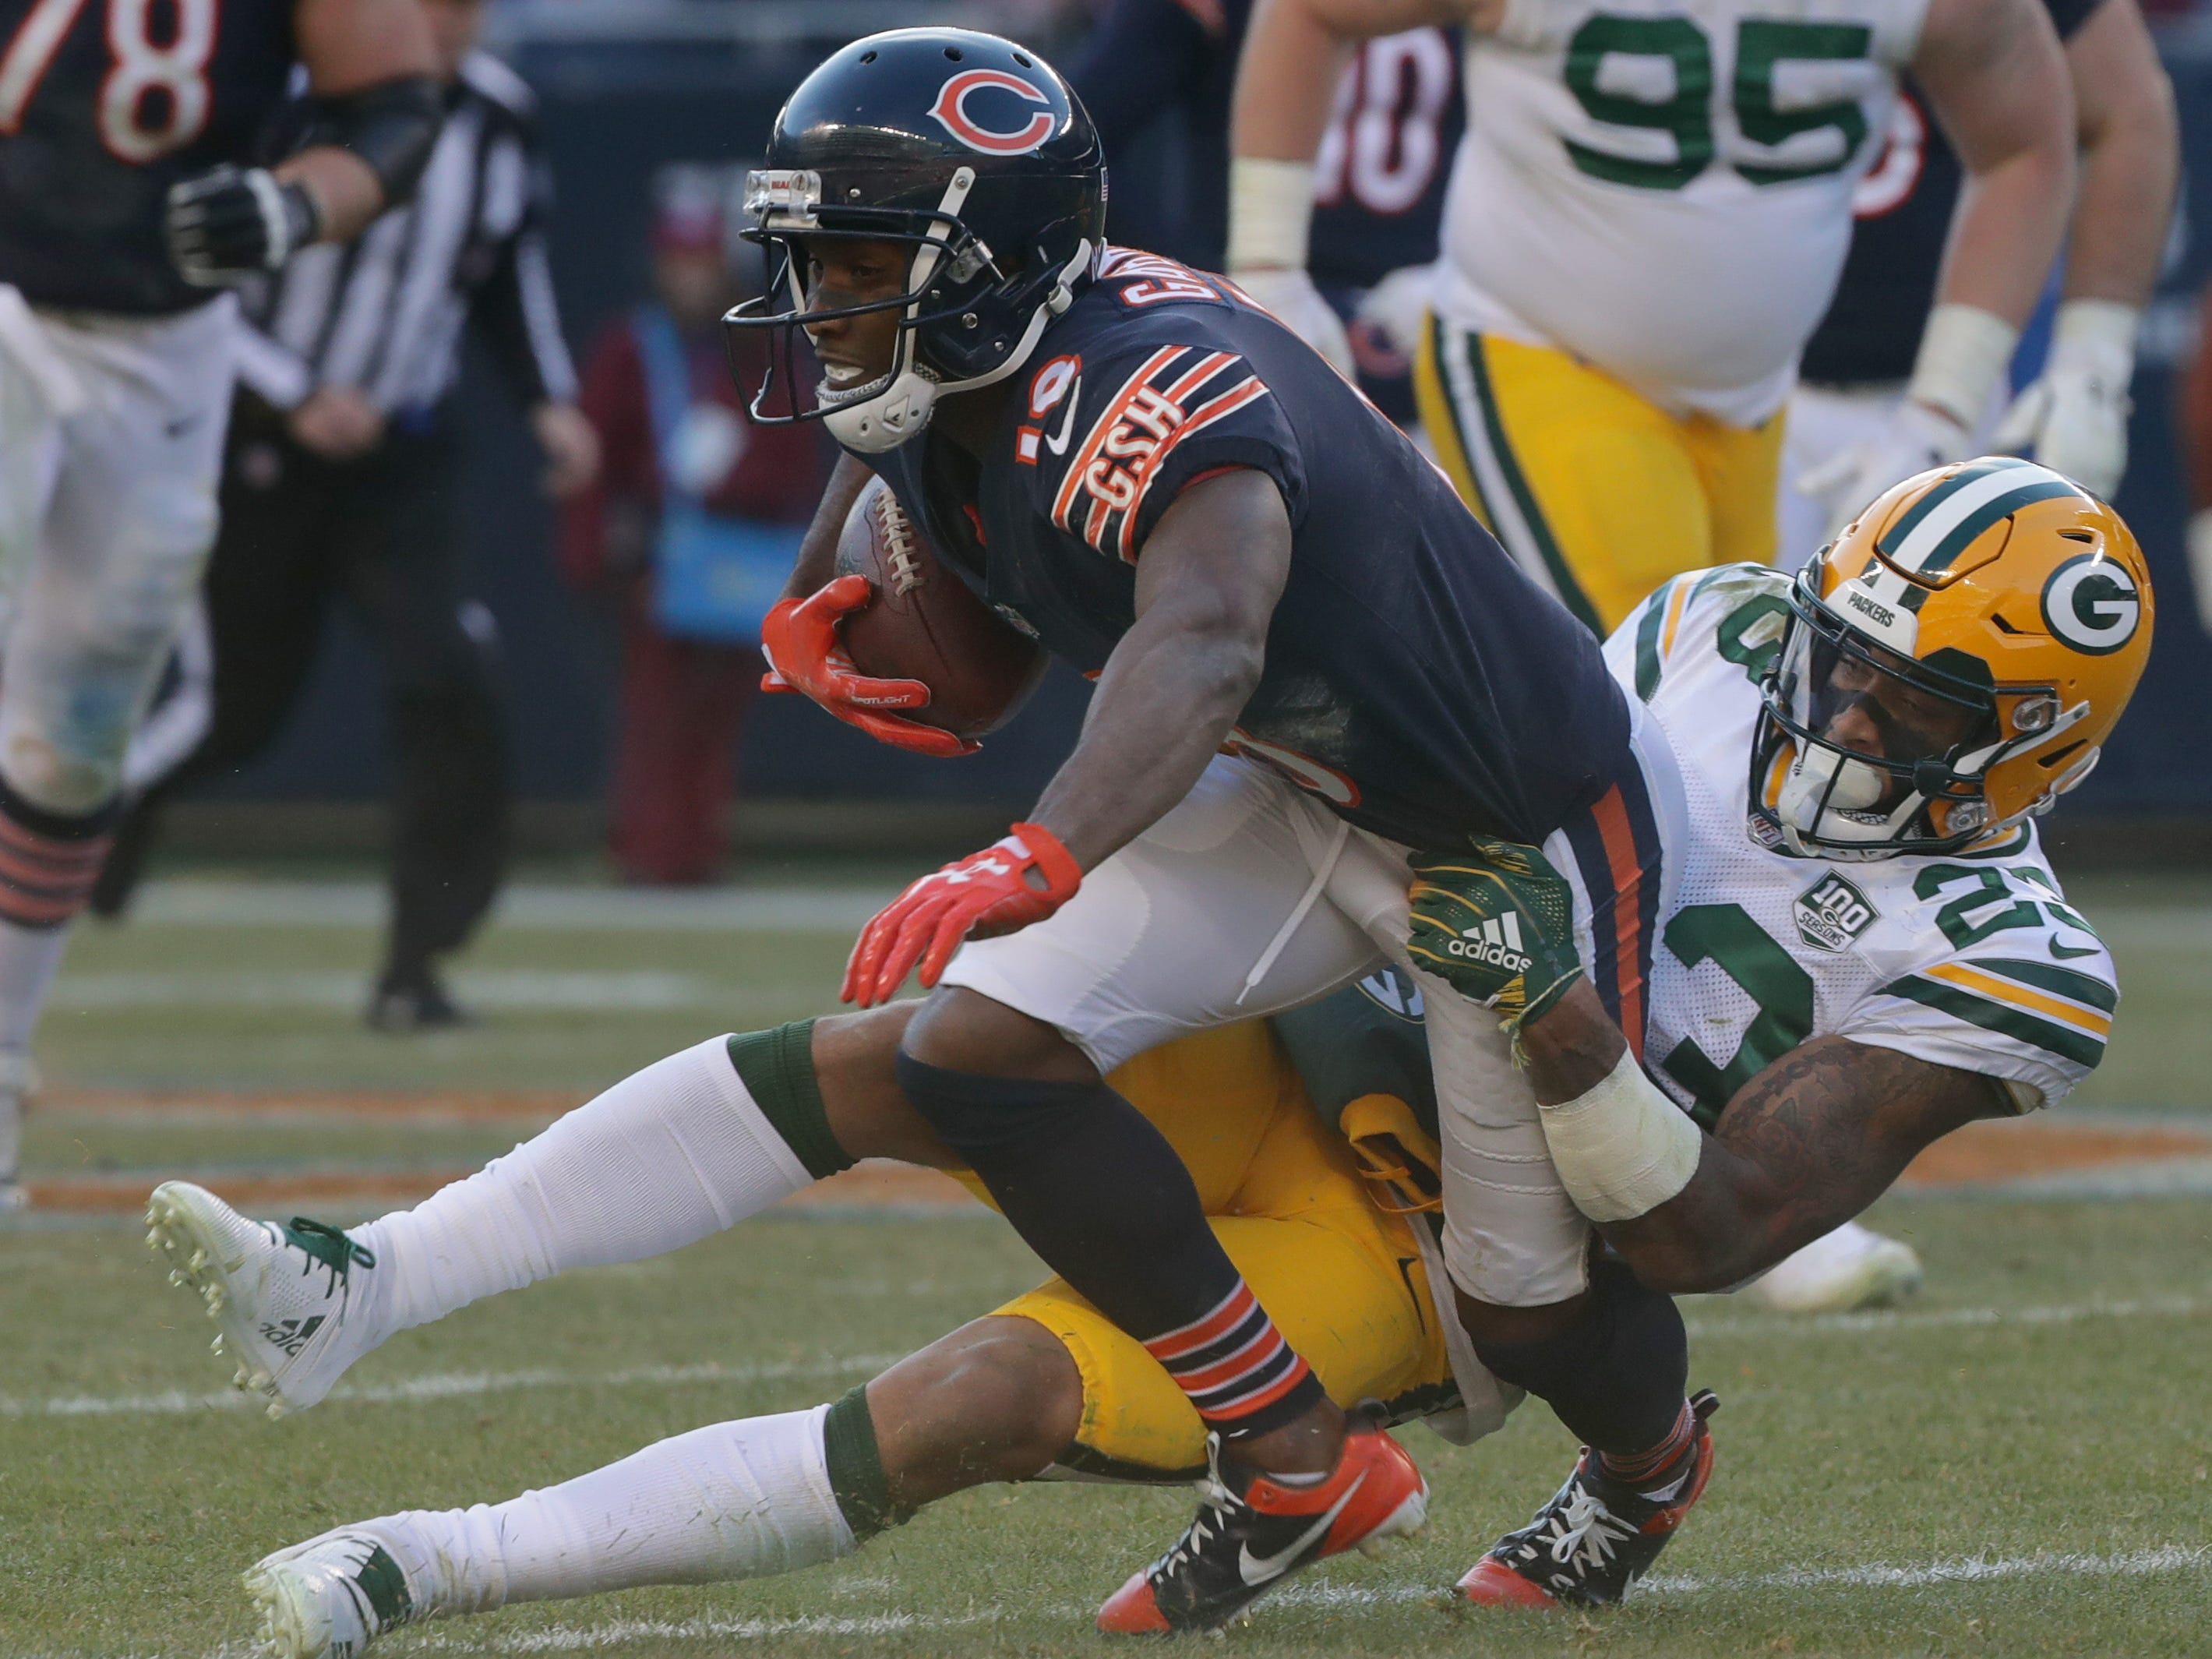 Green Bay Packers cornerback Jaire Alexander (23) tackles Chicago Bears wide receiver Taylor Gabriel (18) after a short reception during the fourth quarter of their game Sunday, December 25, 2018 at Soldier Field in Chicago, Ill. The Chicago Bears beat the Green Bay Packers 24-17.  MARK HOFFMAN/MILWAUKEE JOURNAL SENTINEL